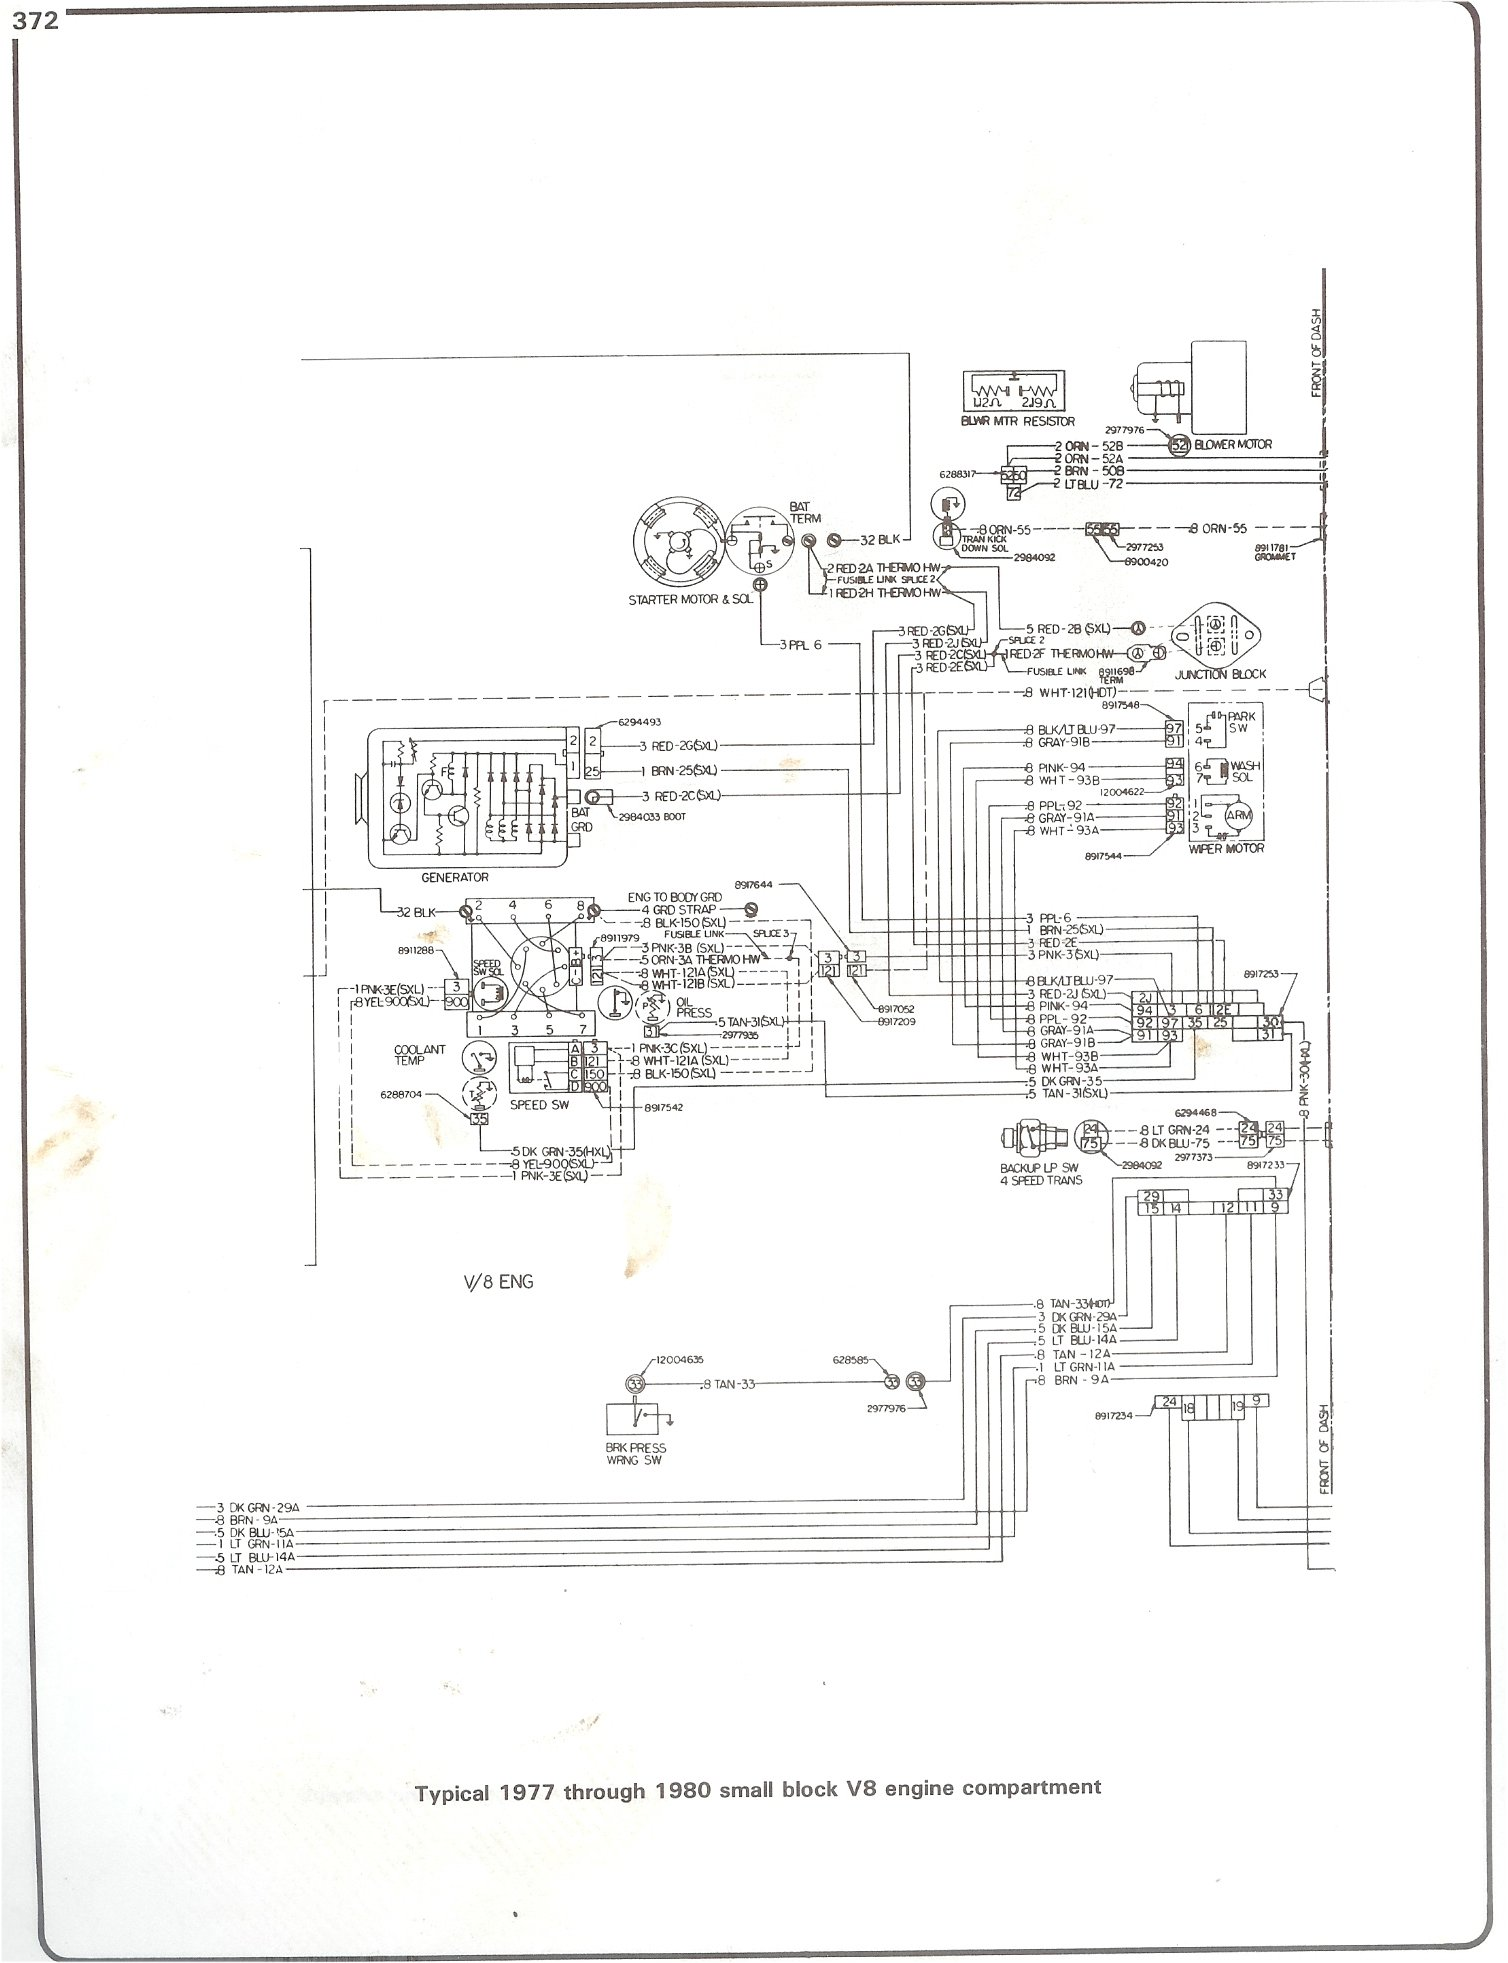 1973 chevy k10 wiring diagram